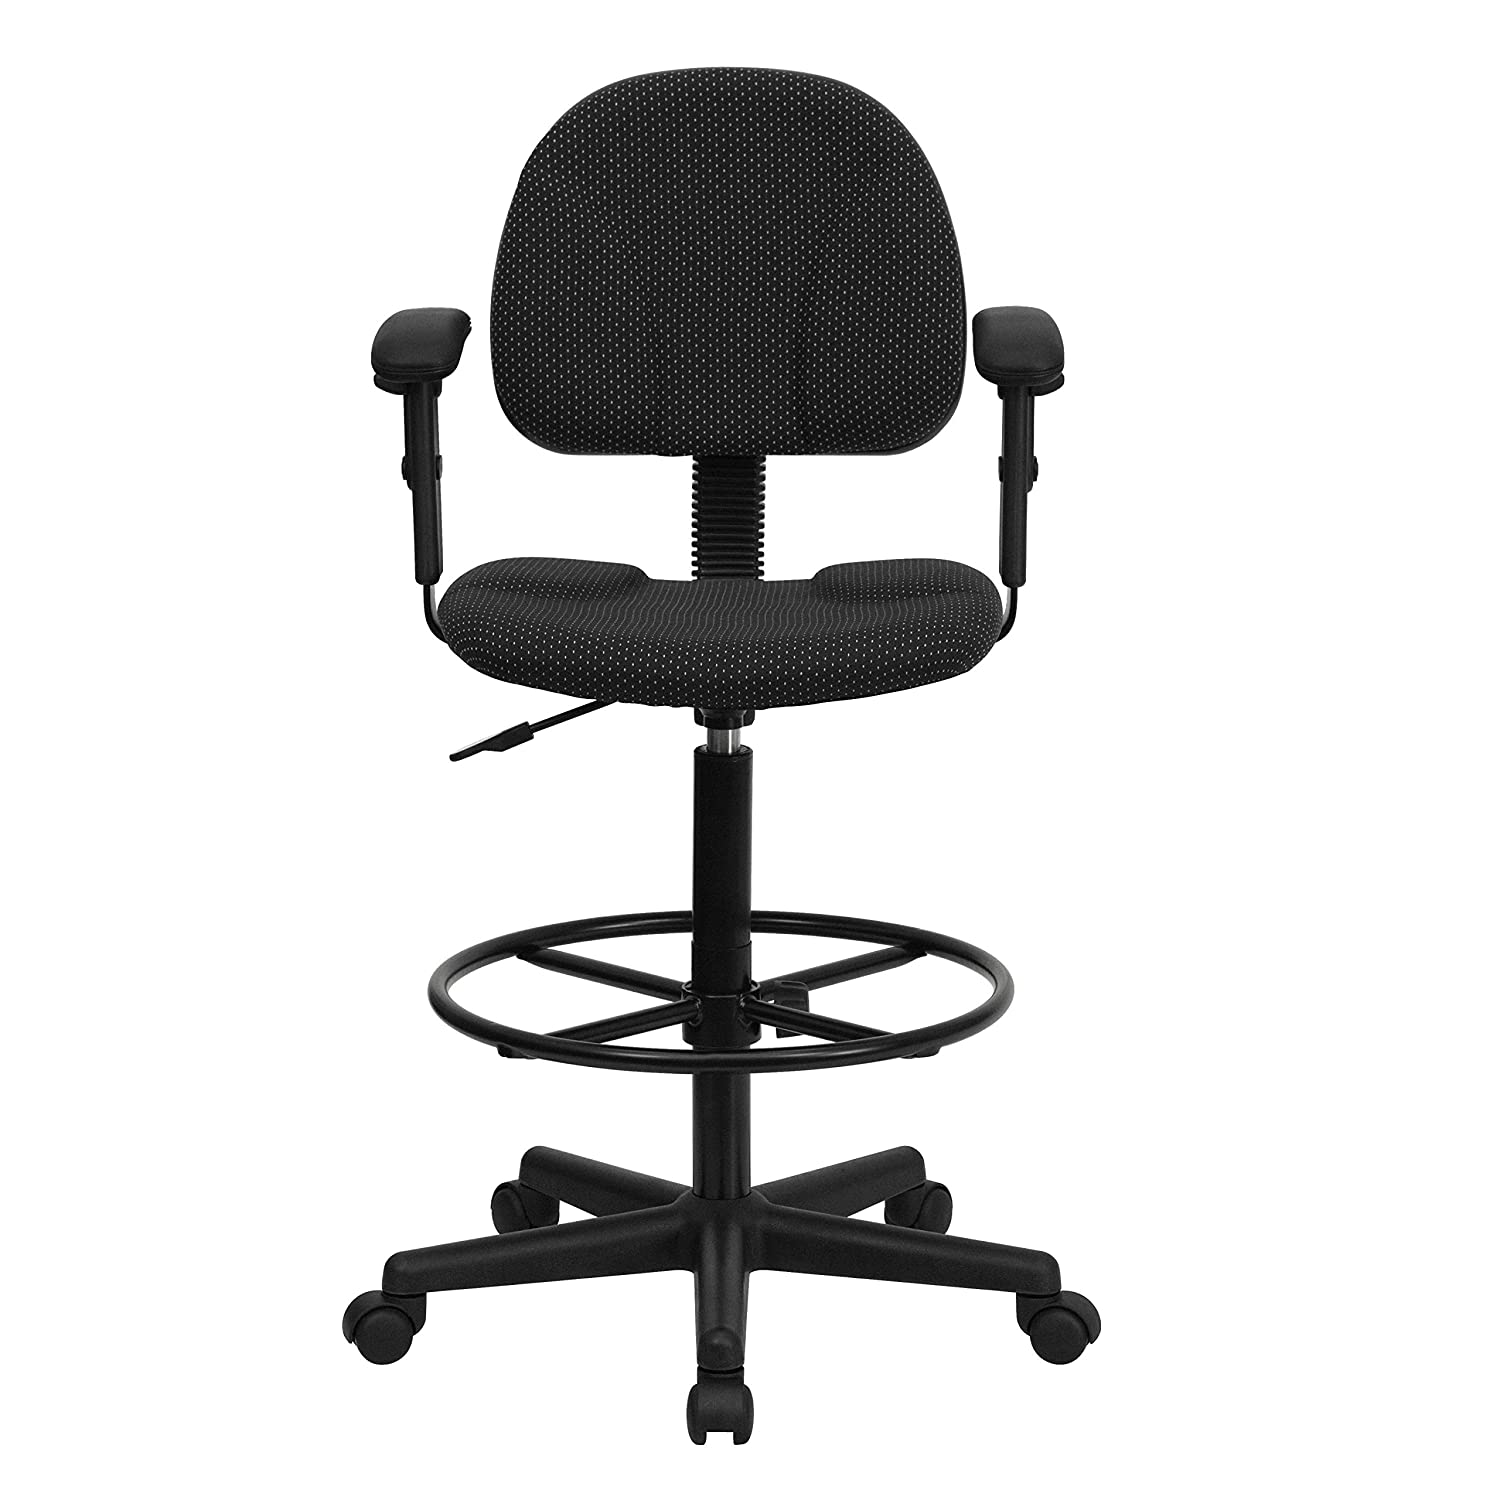 Amazon.com Flash Furniture Black Patterned Fabric Drafting Chair with Adjustable Arms (Cylinders 22.5u0027u0027-27u0027u0027H or 26u0027u0027-30.5u0027u0027H) Kitchen u0026 Dining  sc 1 st  Amazon.com & Amazon.com: Flash Furniture Black Patterned Fabric Drafting Chair ... islam-shia.org